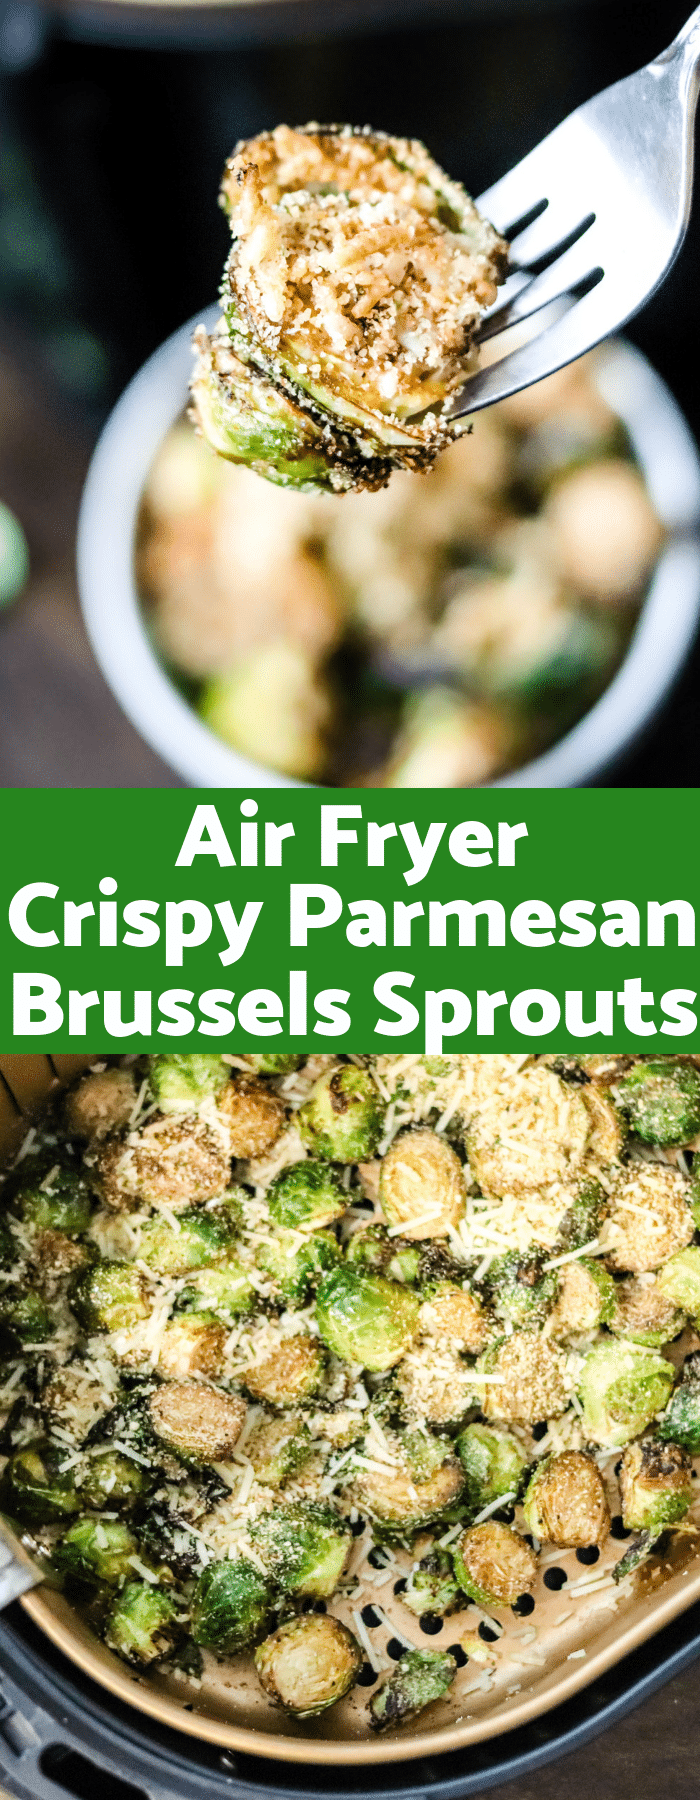 Crispy, cheesy, and majorly delicious; these Air Fryer Crispy Parmesan Brussels Sprouts are going to be your new go-to side dish. Only a handful of ingredients and only 132 calories per serving!